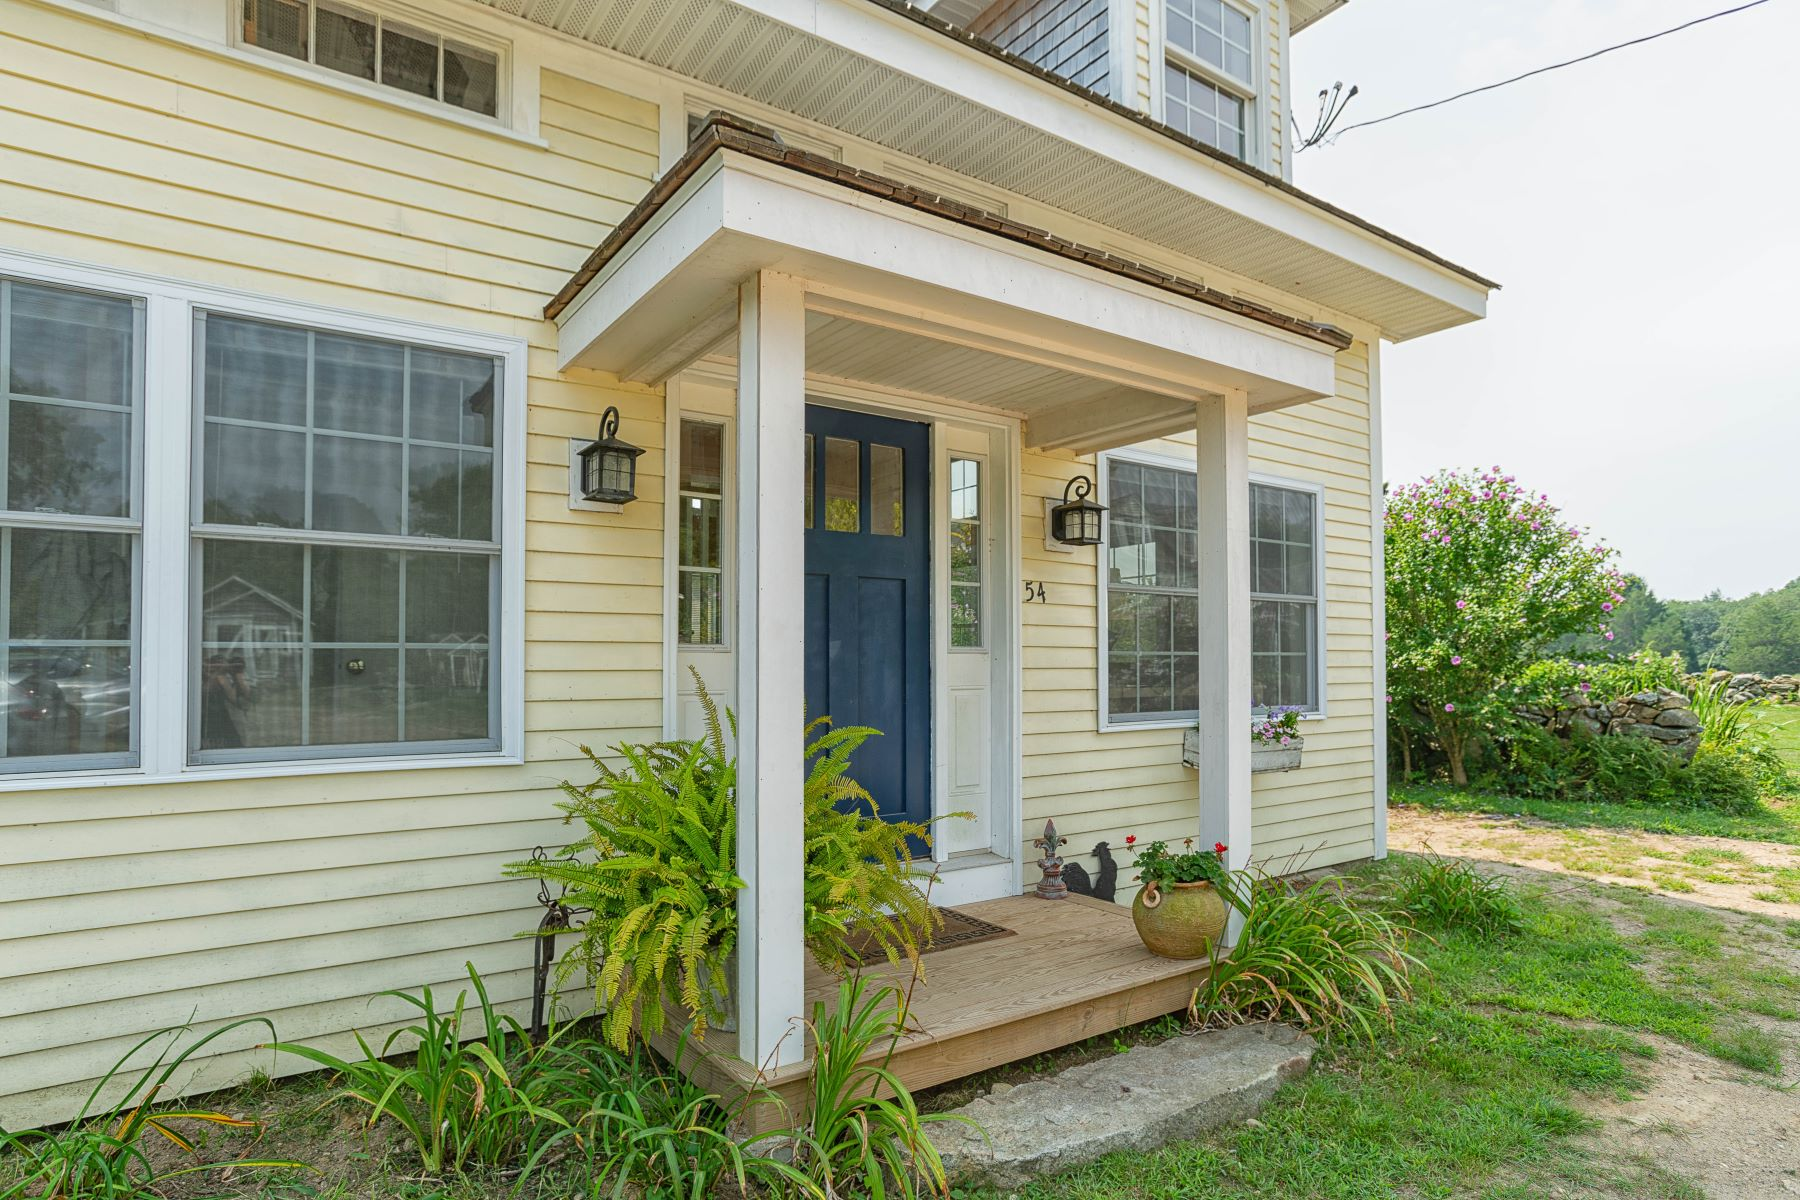 for Rent at 54 Metaterraine Avenue, South Kingstown, RI 54 Metaterraine Avenue South Kingstown, Rhode Island 02879 United States